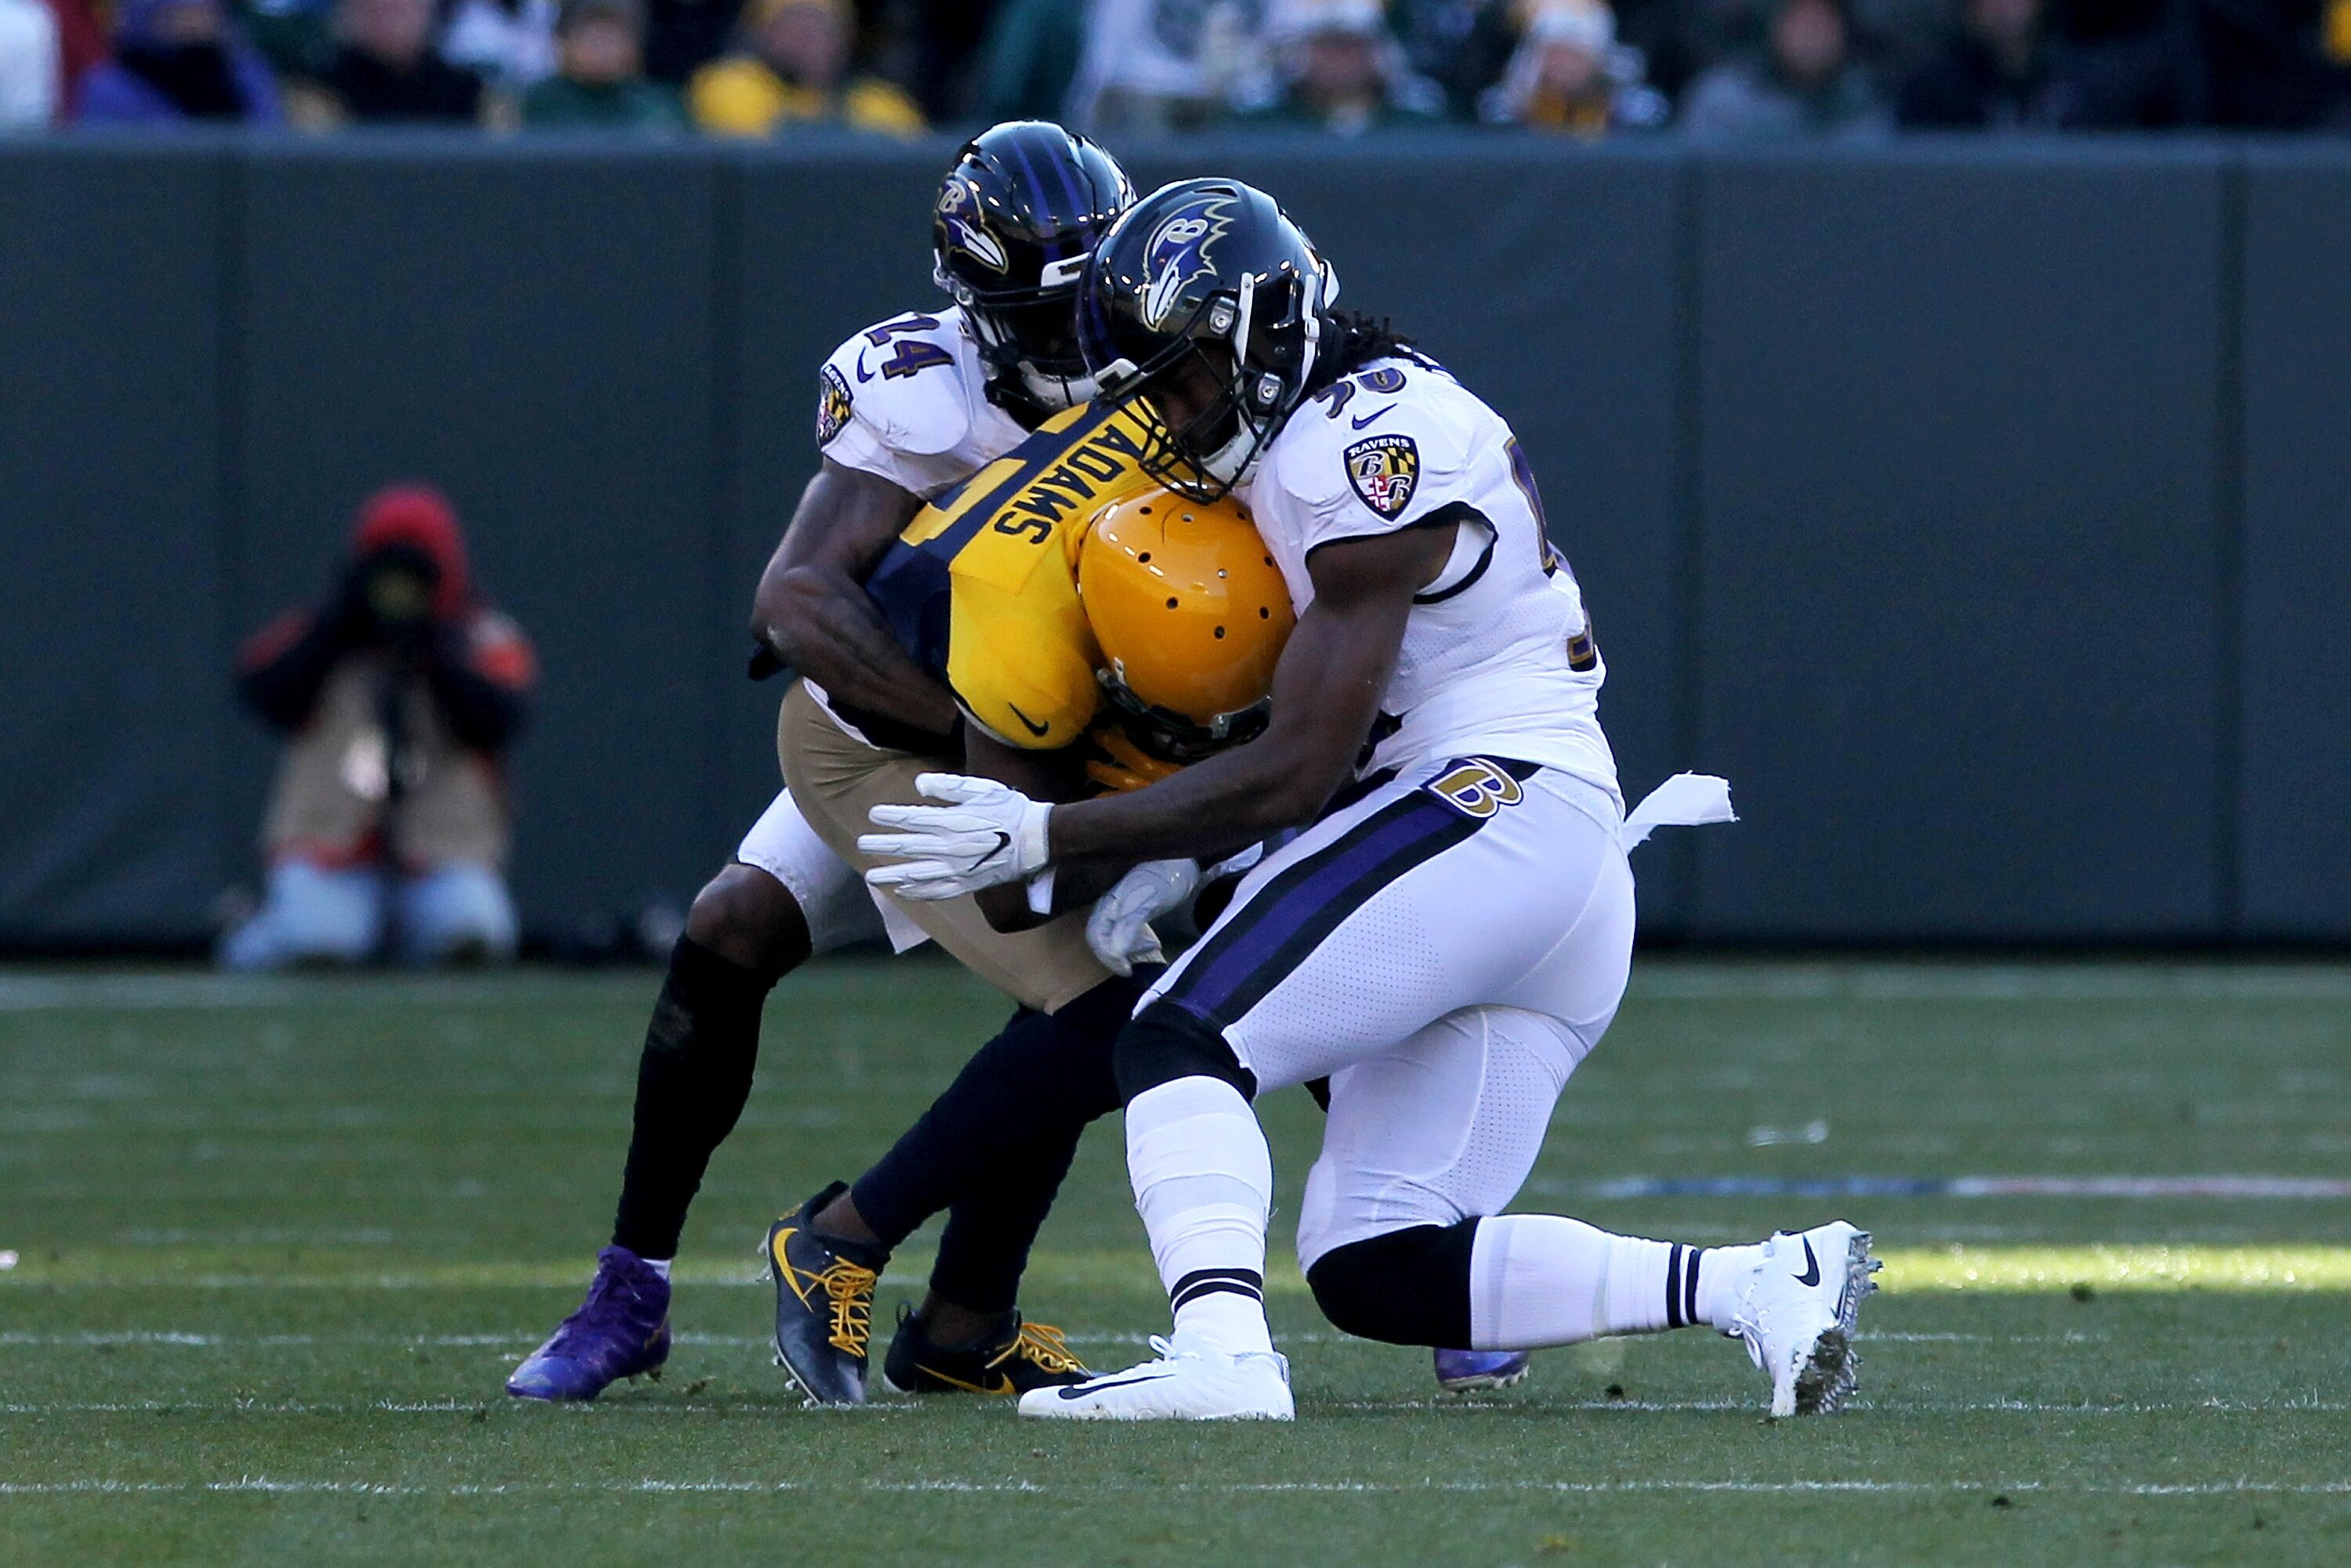 Tim Williams could be poised for a breakout year with Ravens